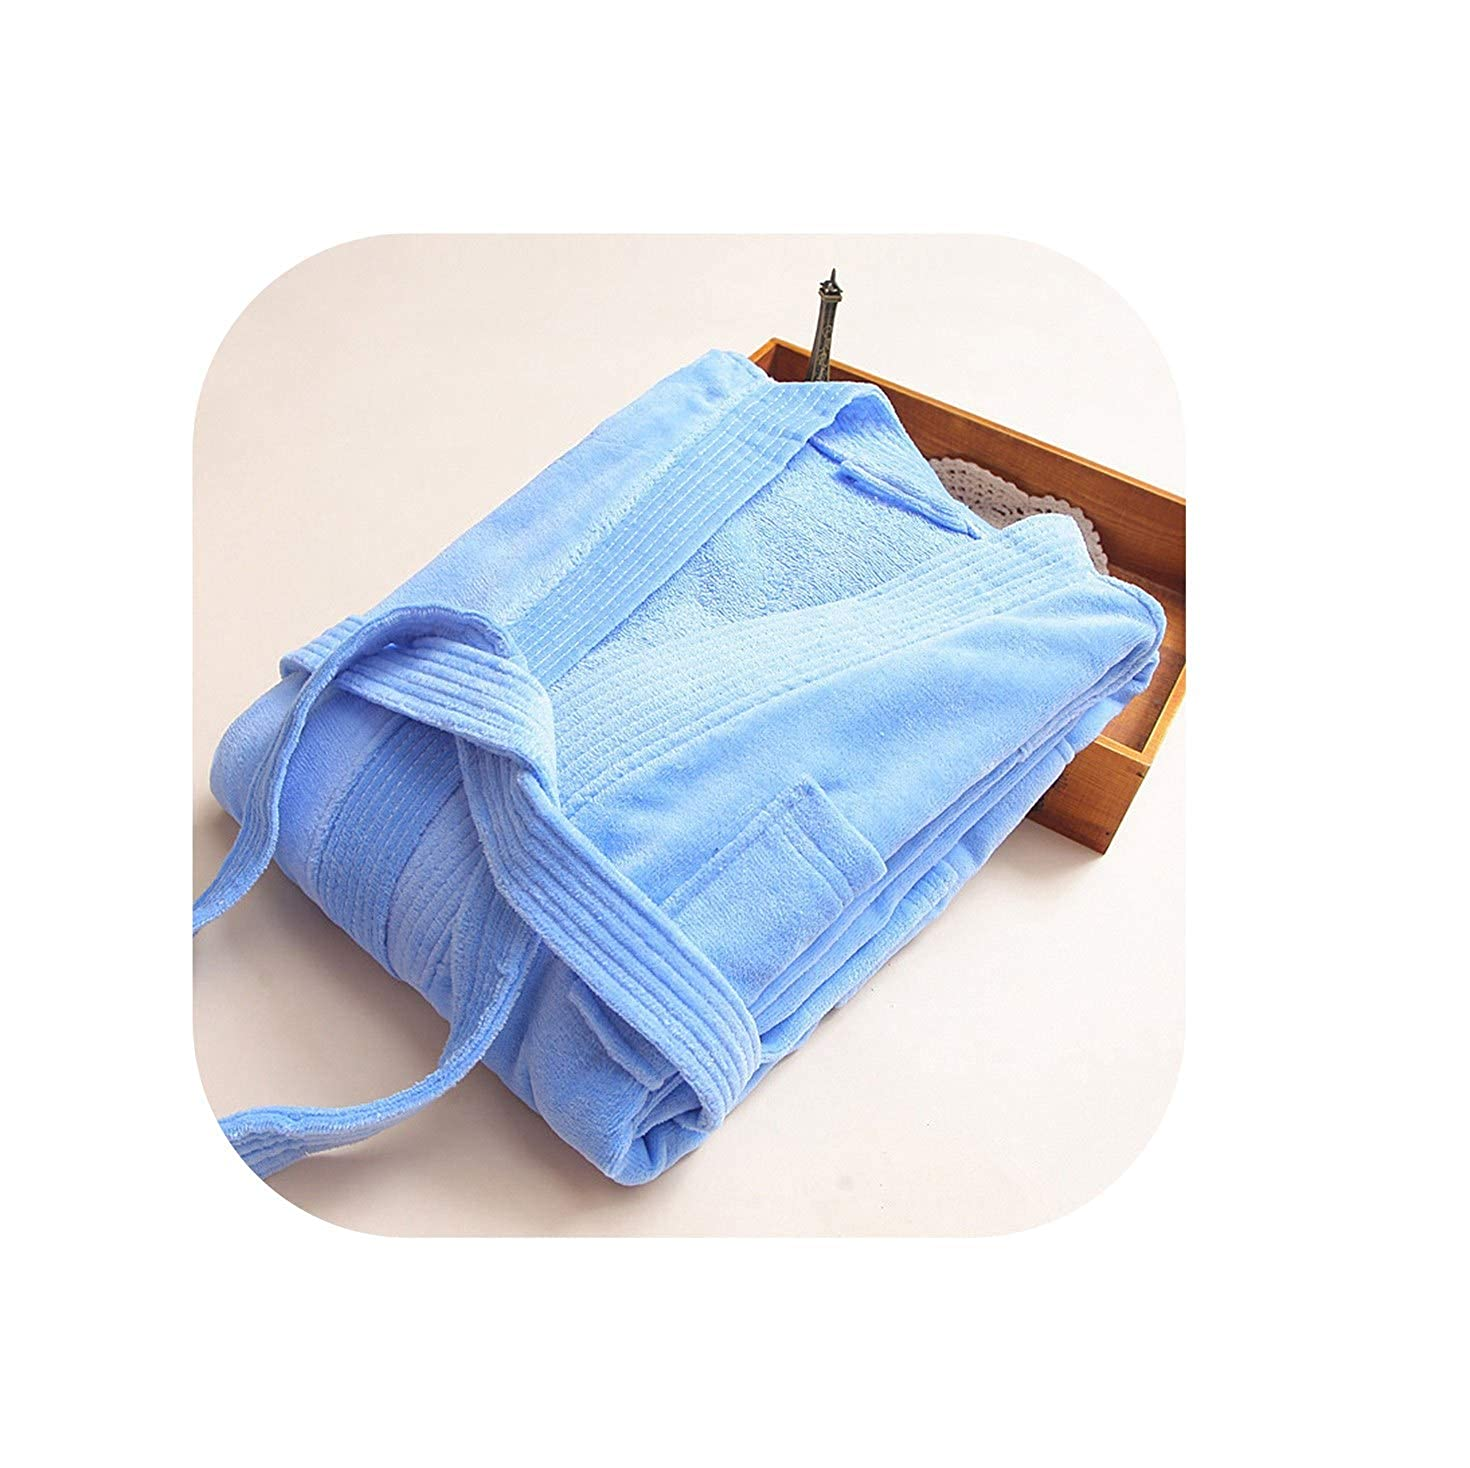 bluee TheUniqueHouse Sexy Cotton Bathrobes Thicken Towel Fabric LongSleeve Fashion Kimono SPA Hotels Robes